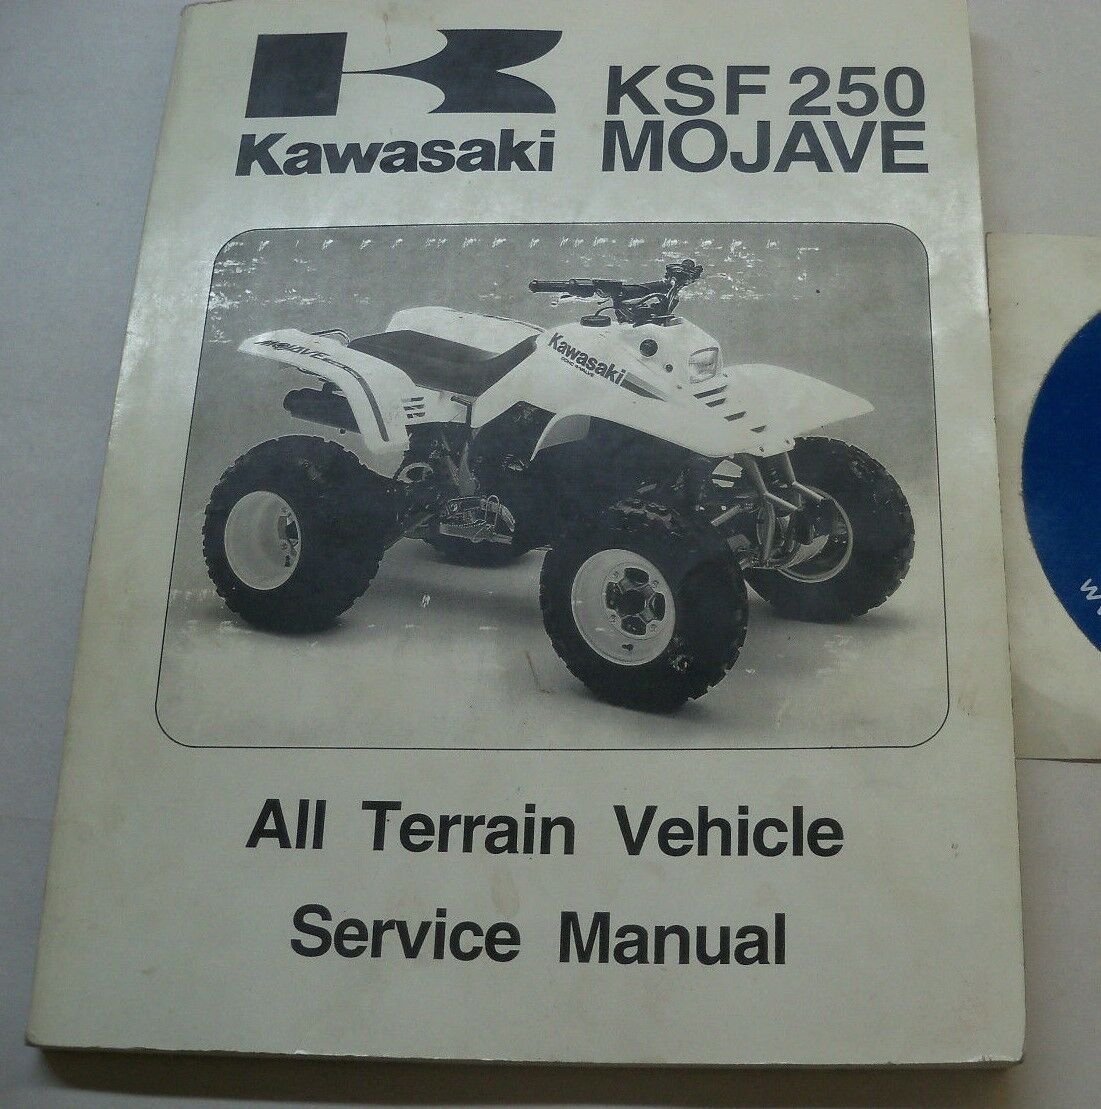 hight resolution of norton secured powered by verisign genuine kawasaki service manual ksf250 ksf 250 mojave